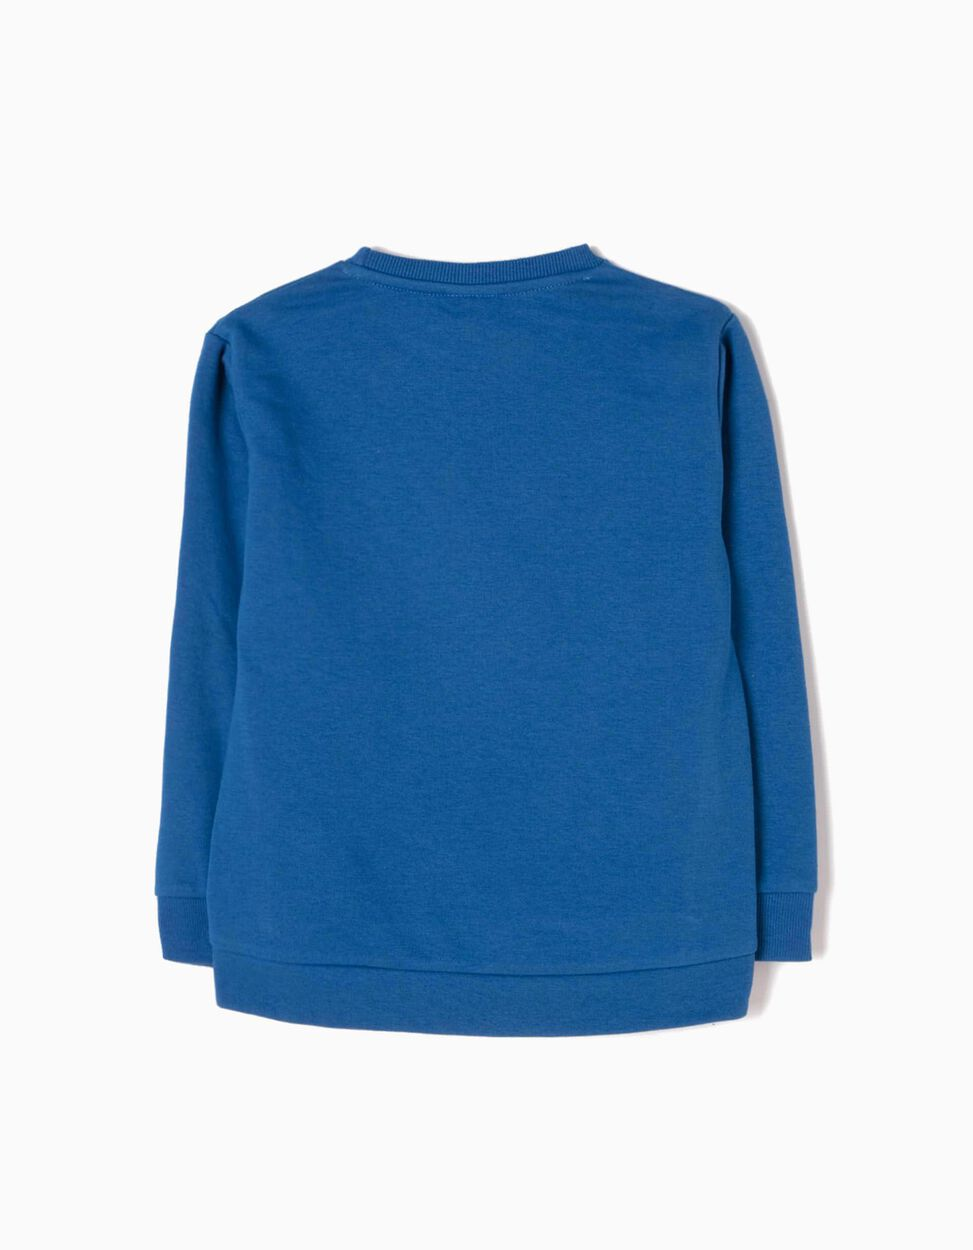 Sweatshirt Bubble Drinks Azul